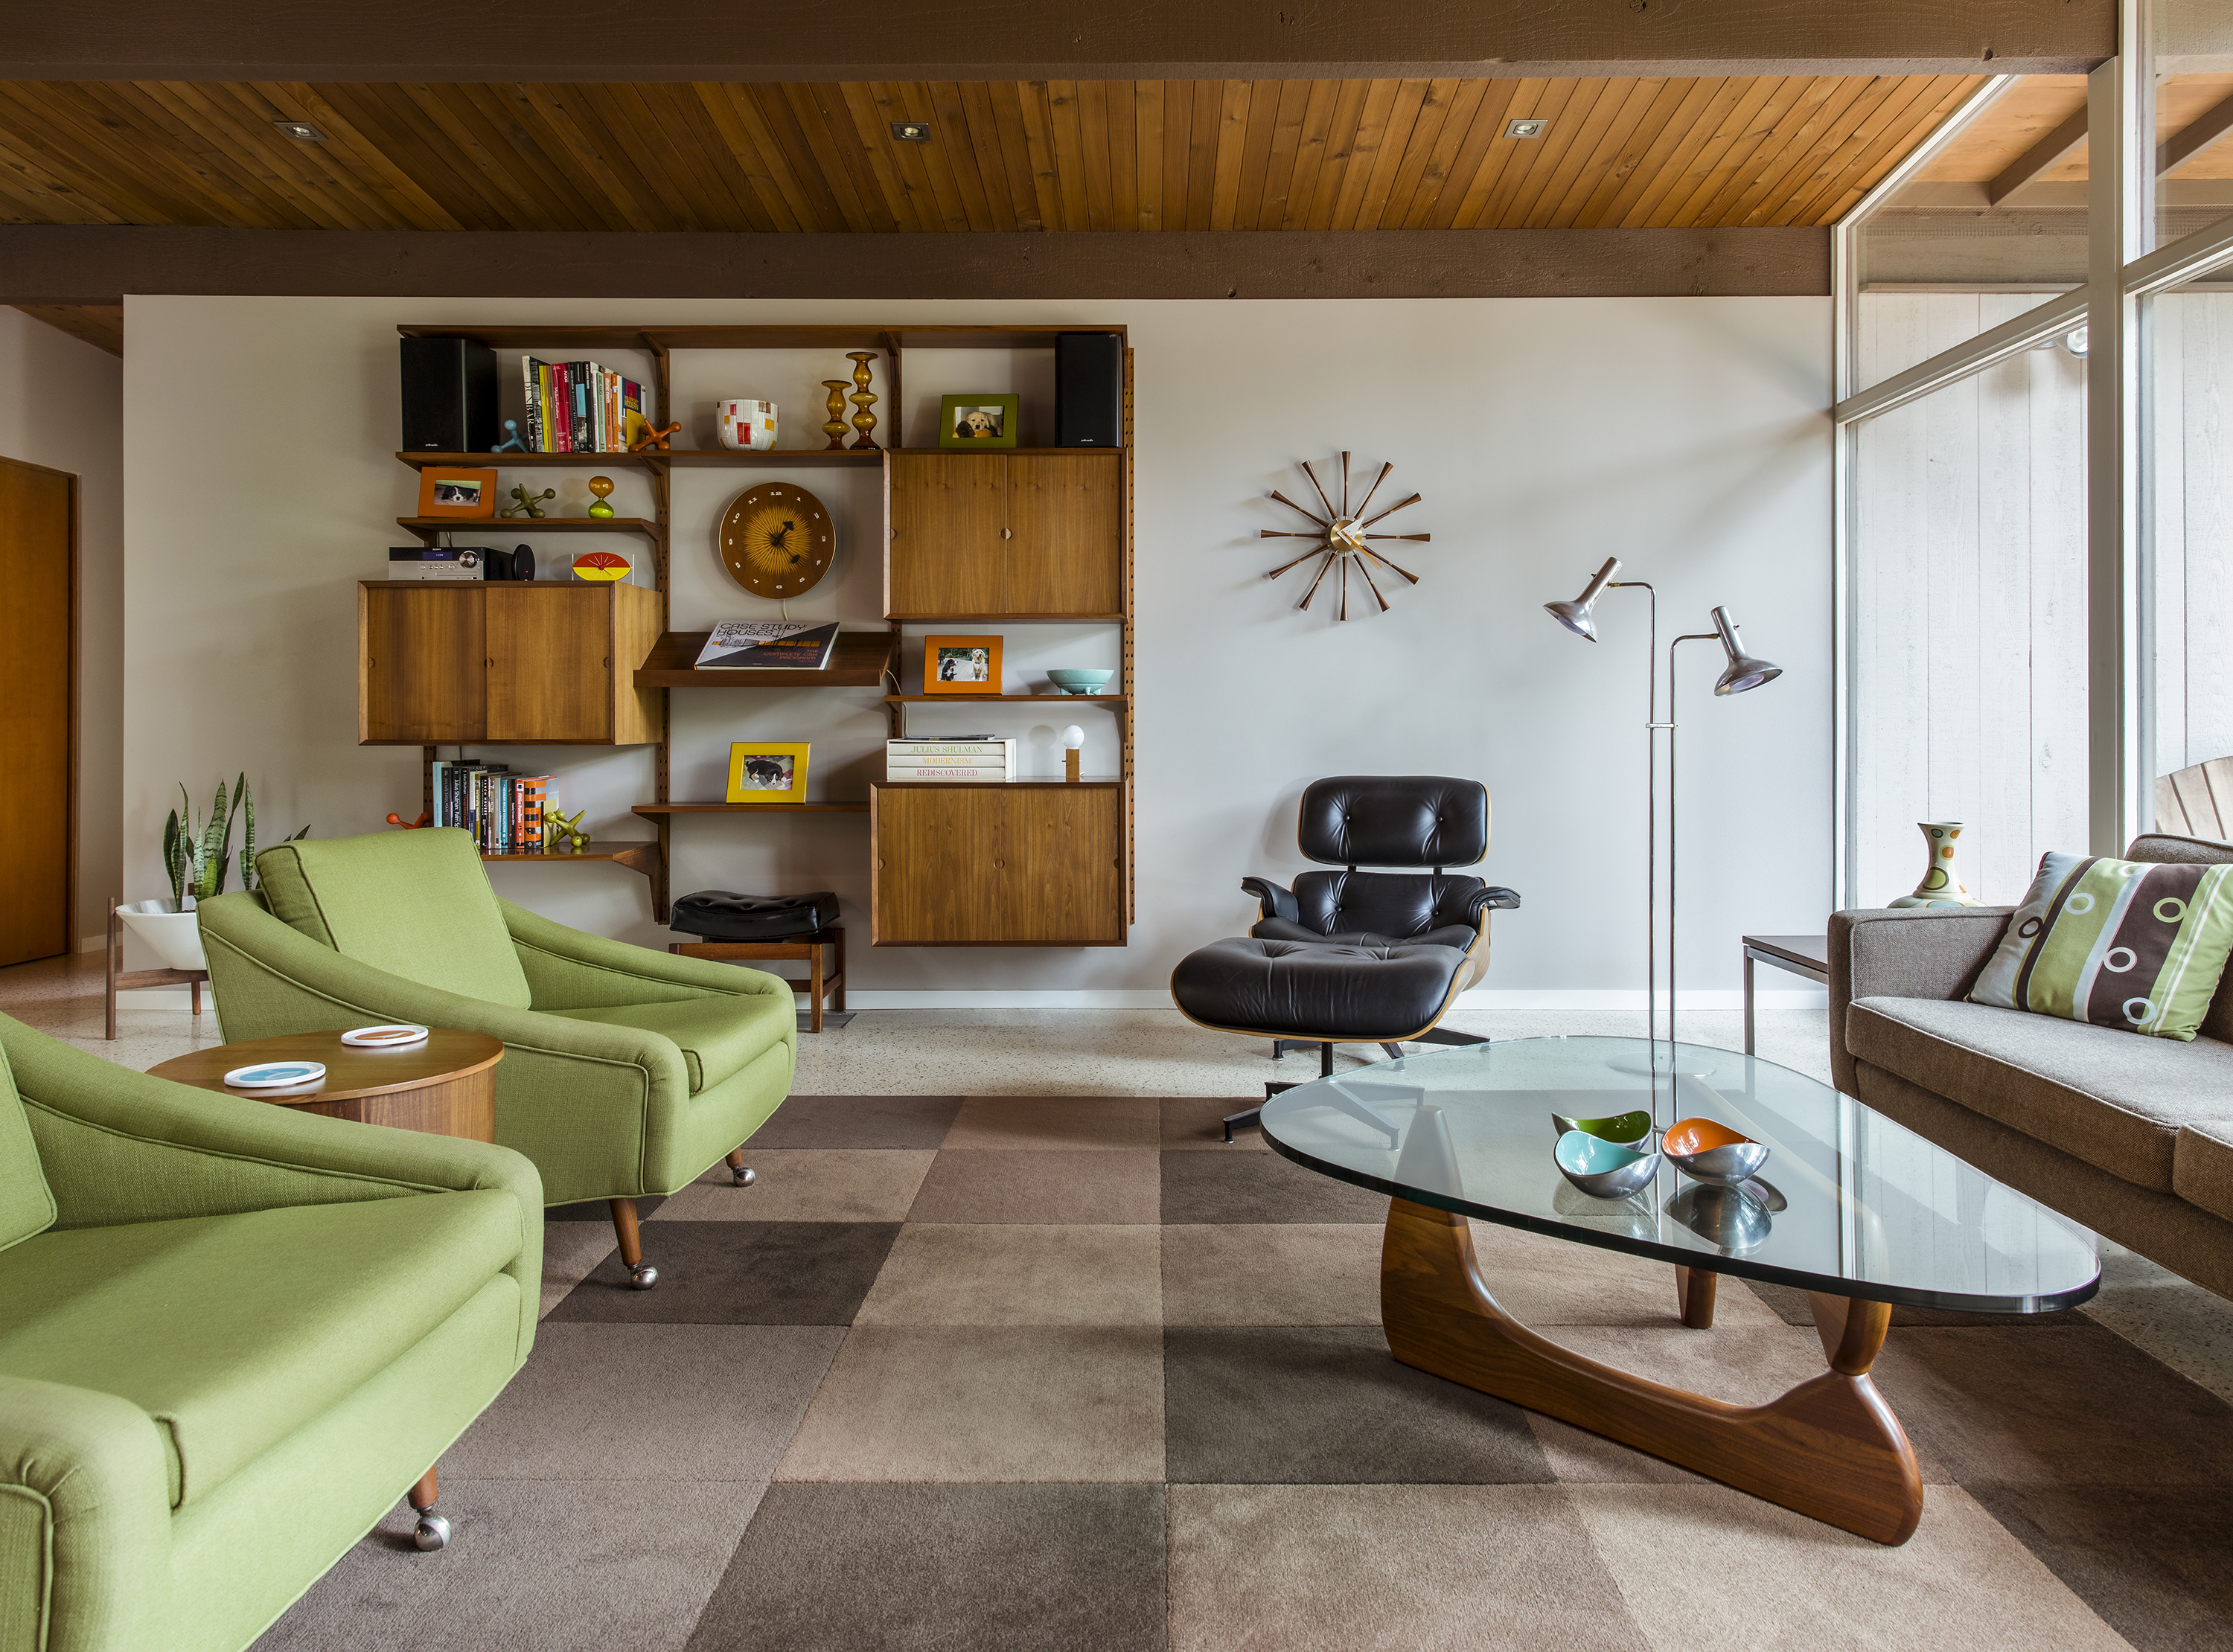 Remaking midcentury modern in portland curbed - Small living room furniture for sale ...